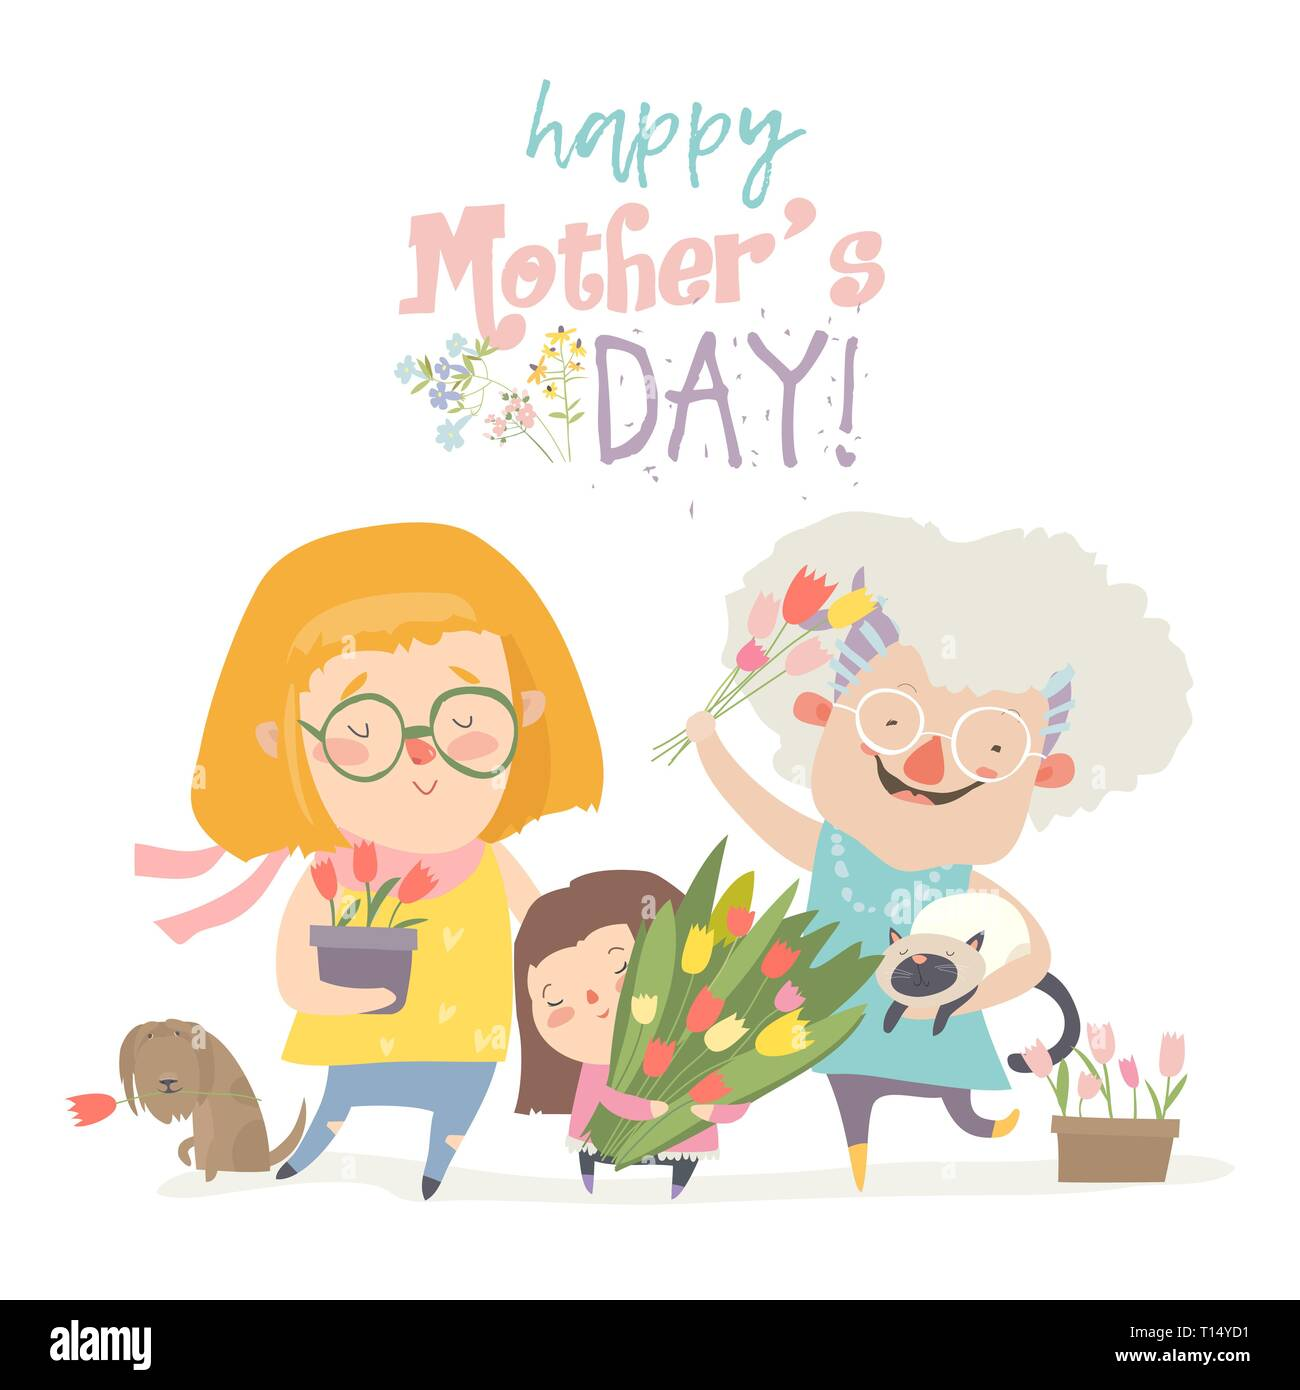 Three generations of women of different ages from child to young adult mother and senior grandmother - Stock Vector